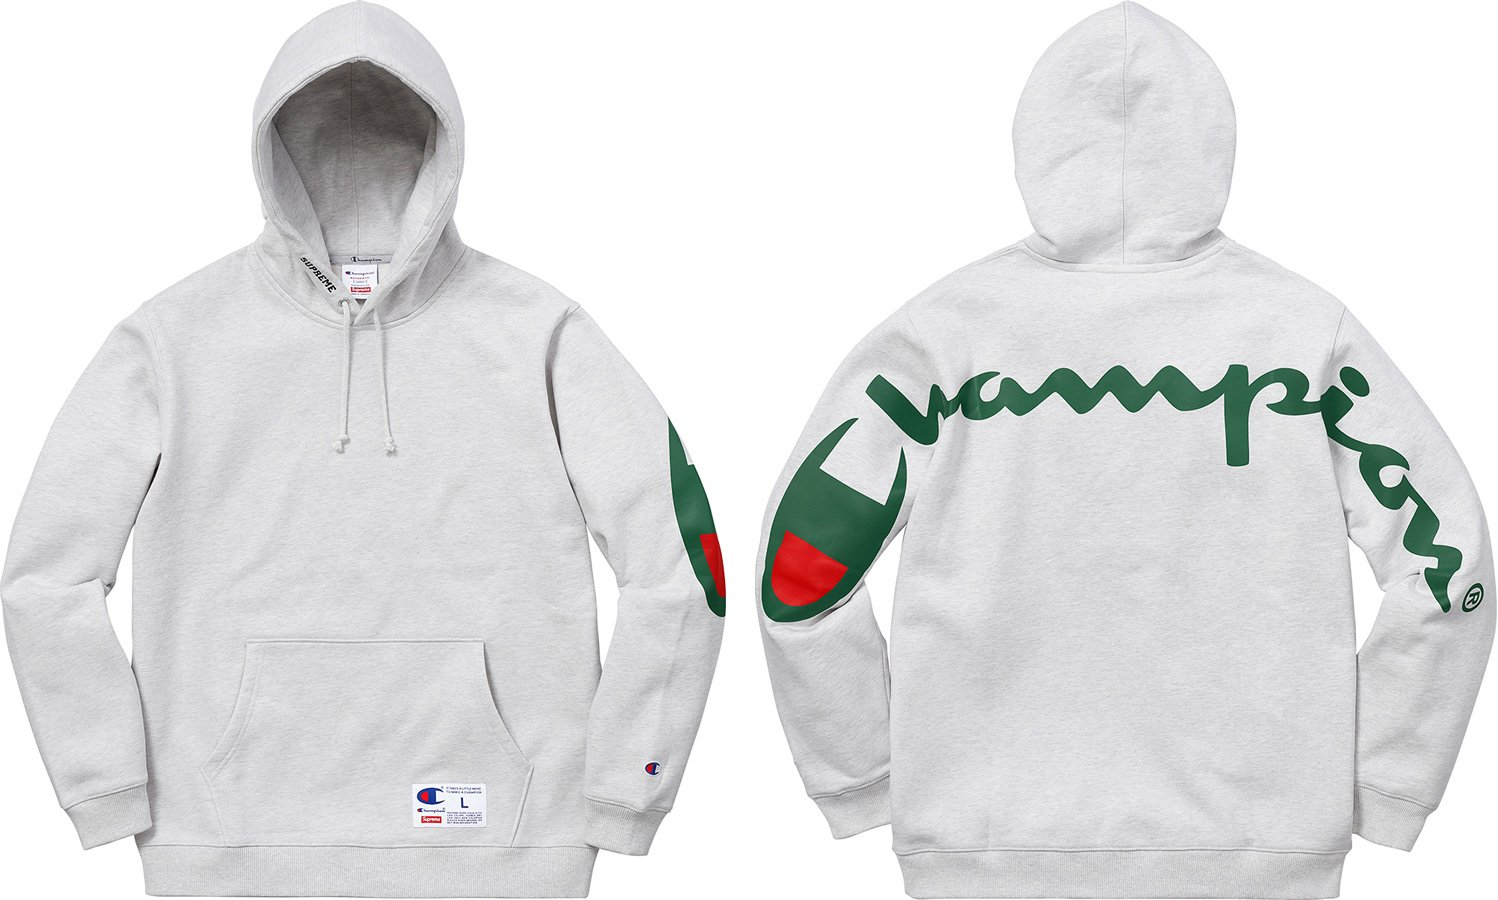 a1c670a5645 Supreme × Champion ×. Supreme x Champion Hooded Sweatshirt